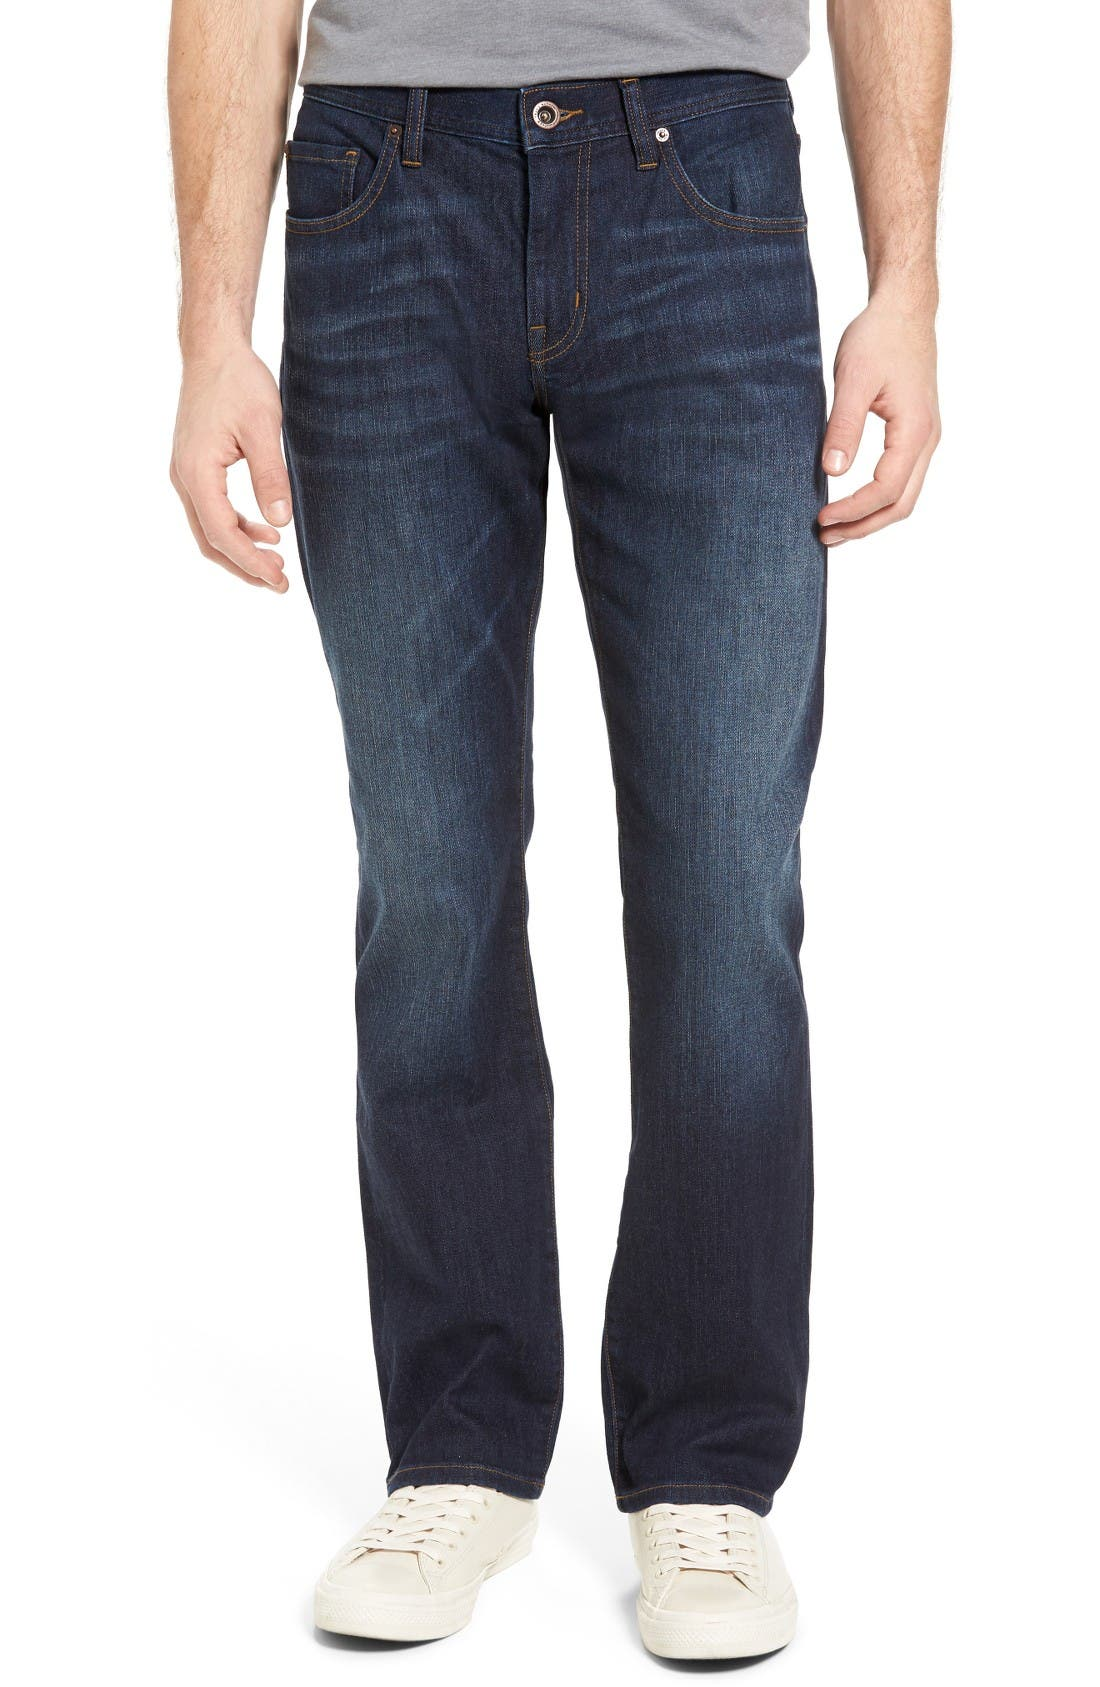 Travis Mathew 'Duke' Relaxed Fit Jeans (Vintage Indigo)